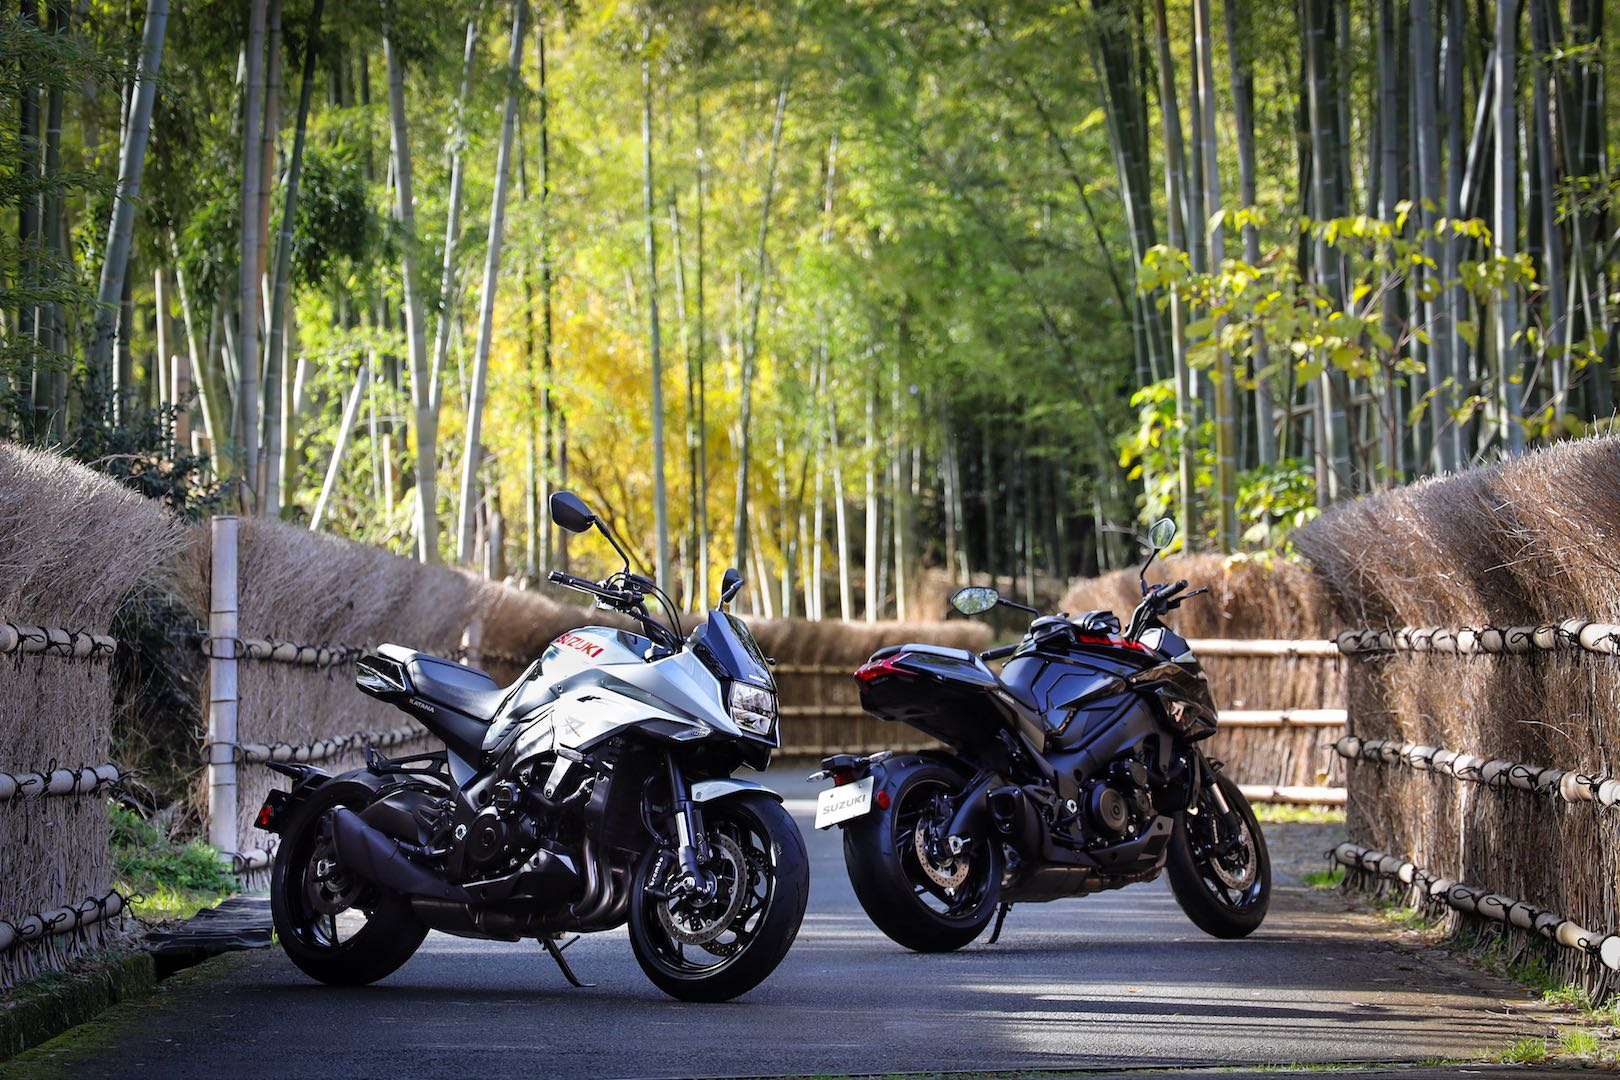 2020 Suzuki Katana in homeland